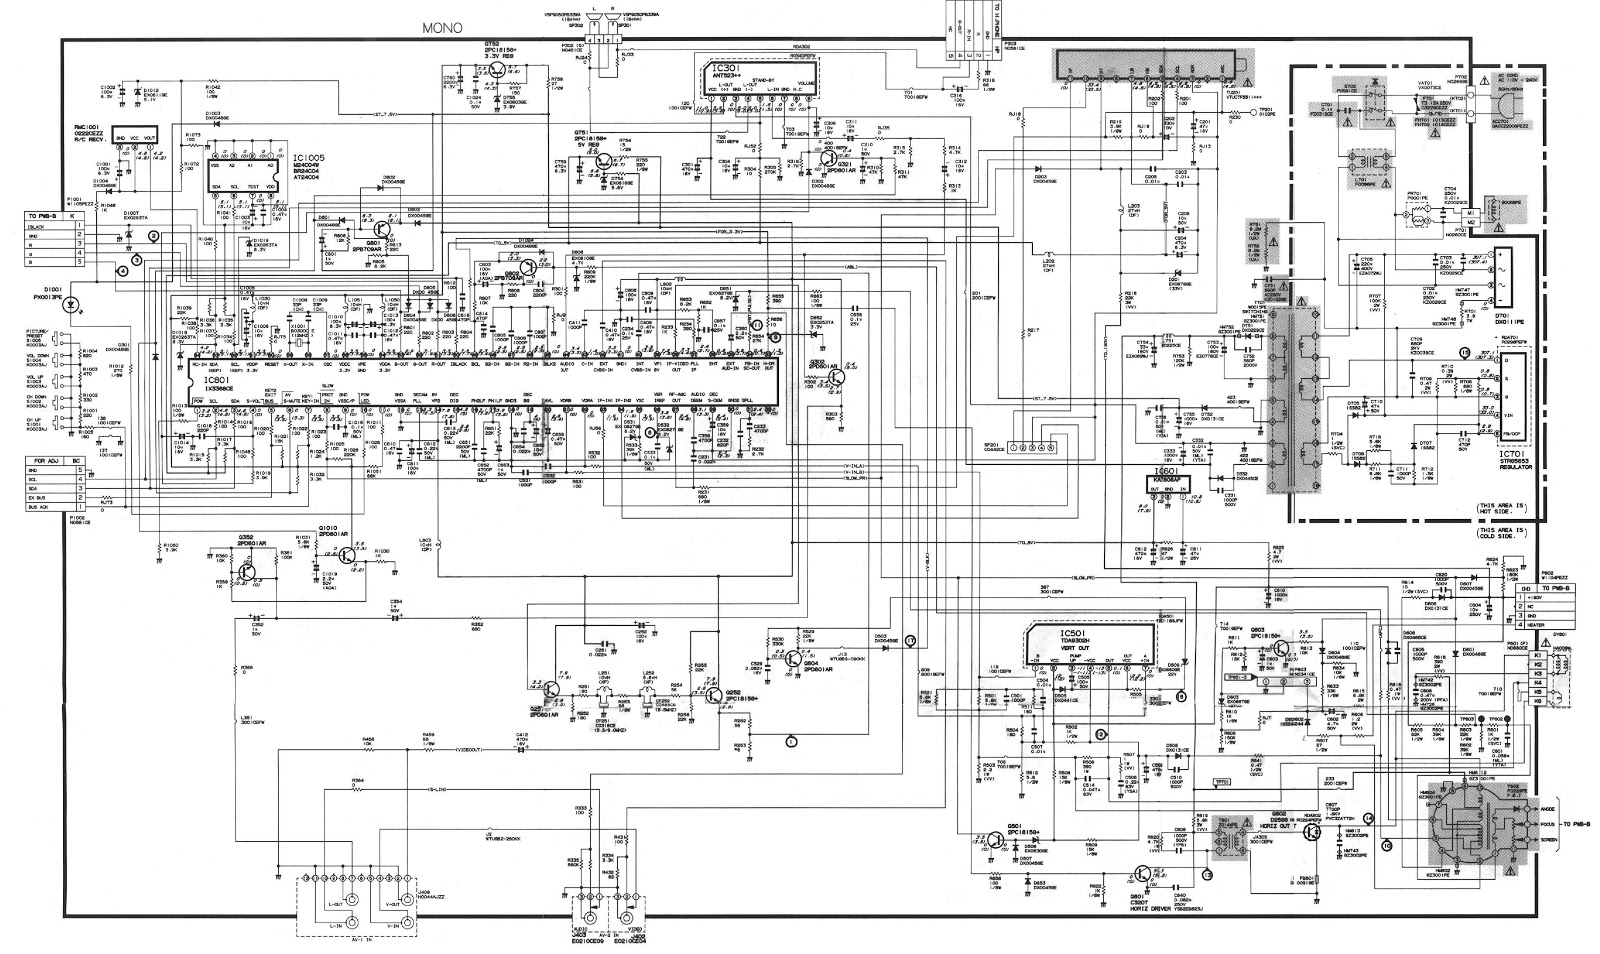 Crt Tv Schematic Diagram. crt tv circuit board diagram